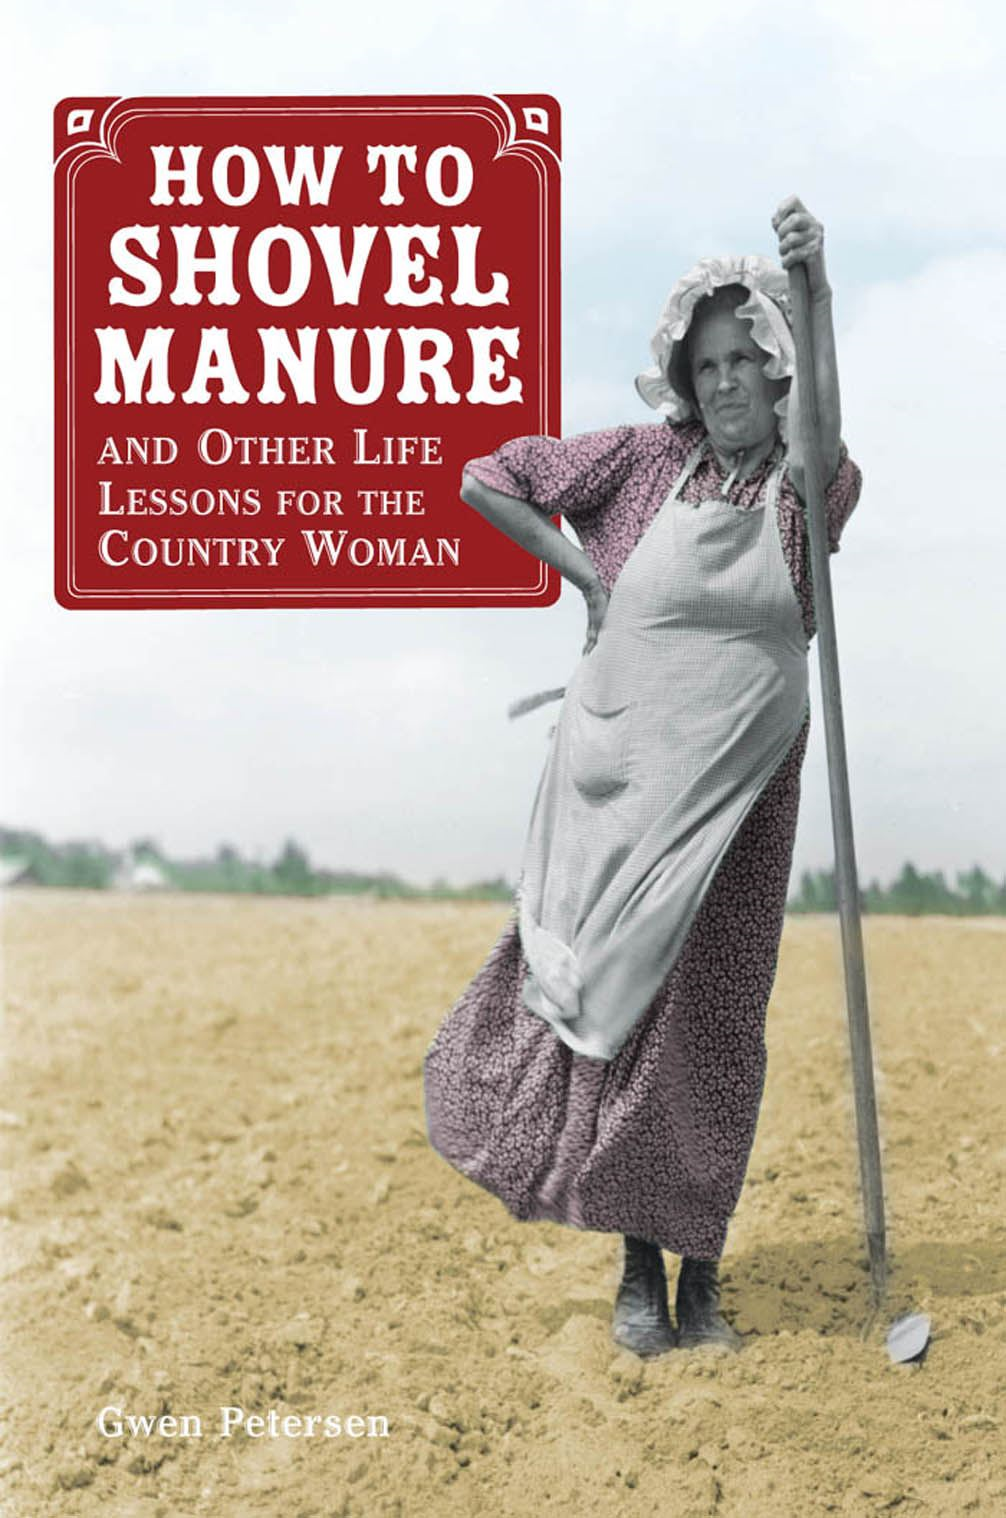 How to Shovel Manure and Other Life Lessons for the Country Woman